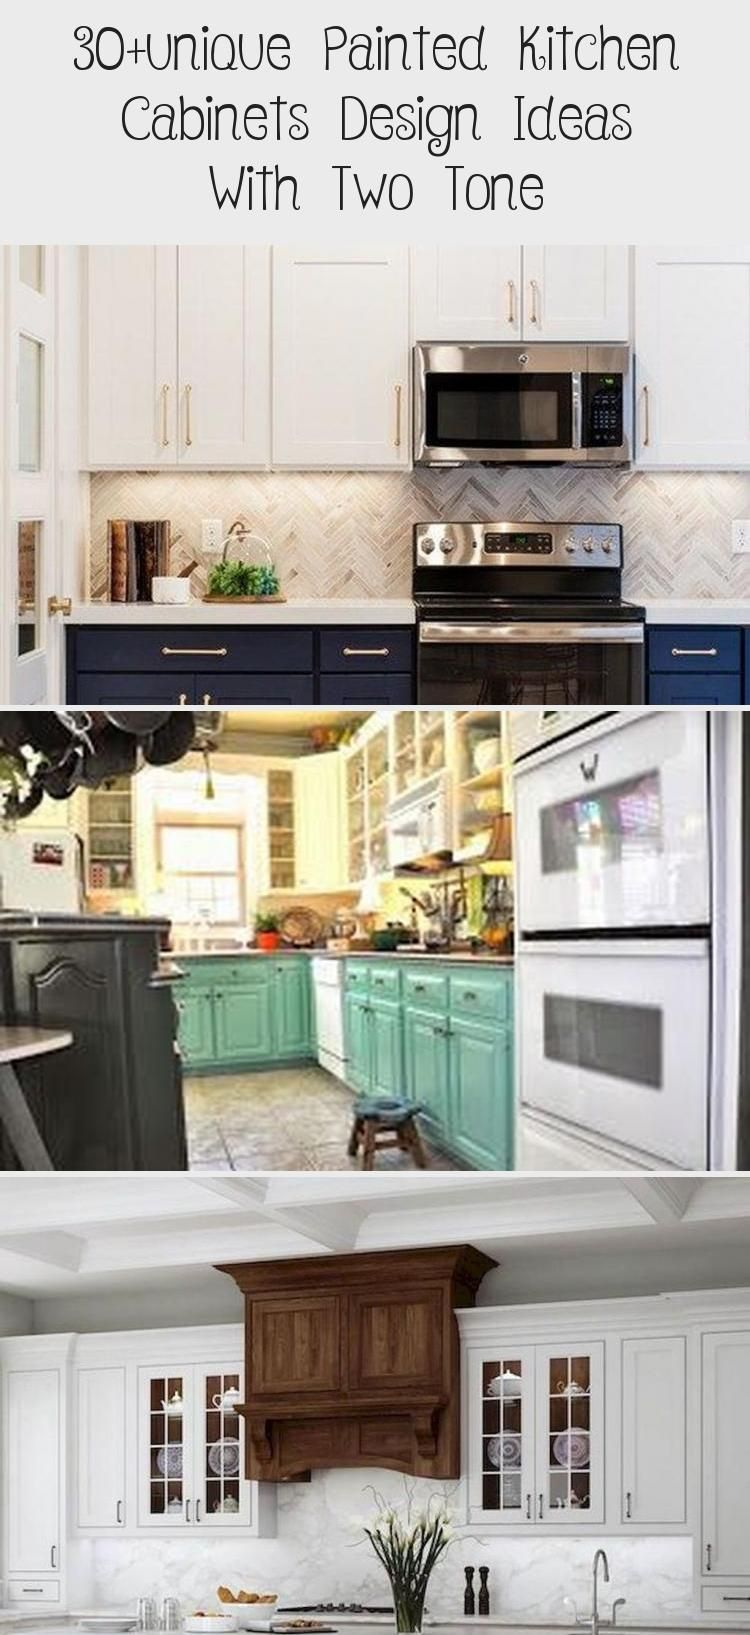 Photo of 30 + unique Painted Kitchen Cabinets Design Ideas With Two Tone – KTCHN